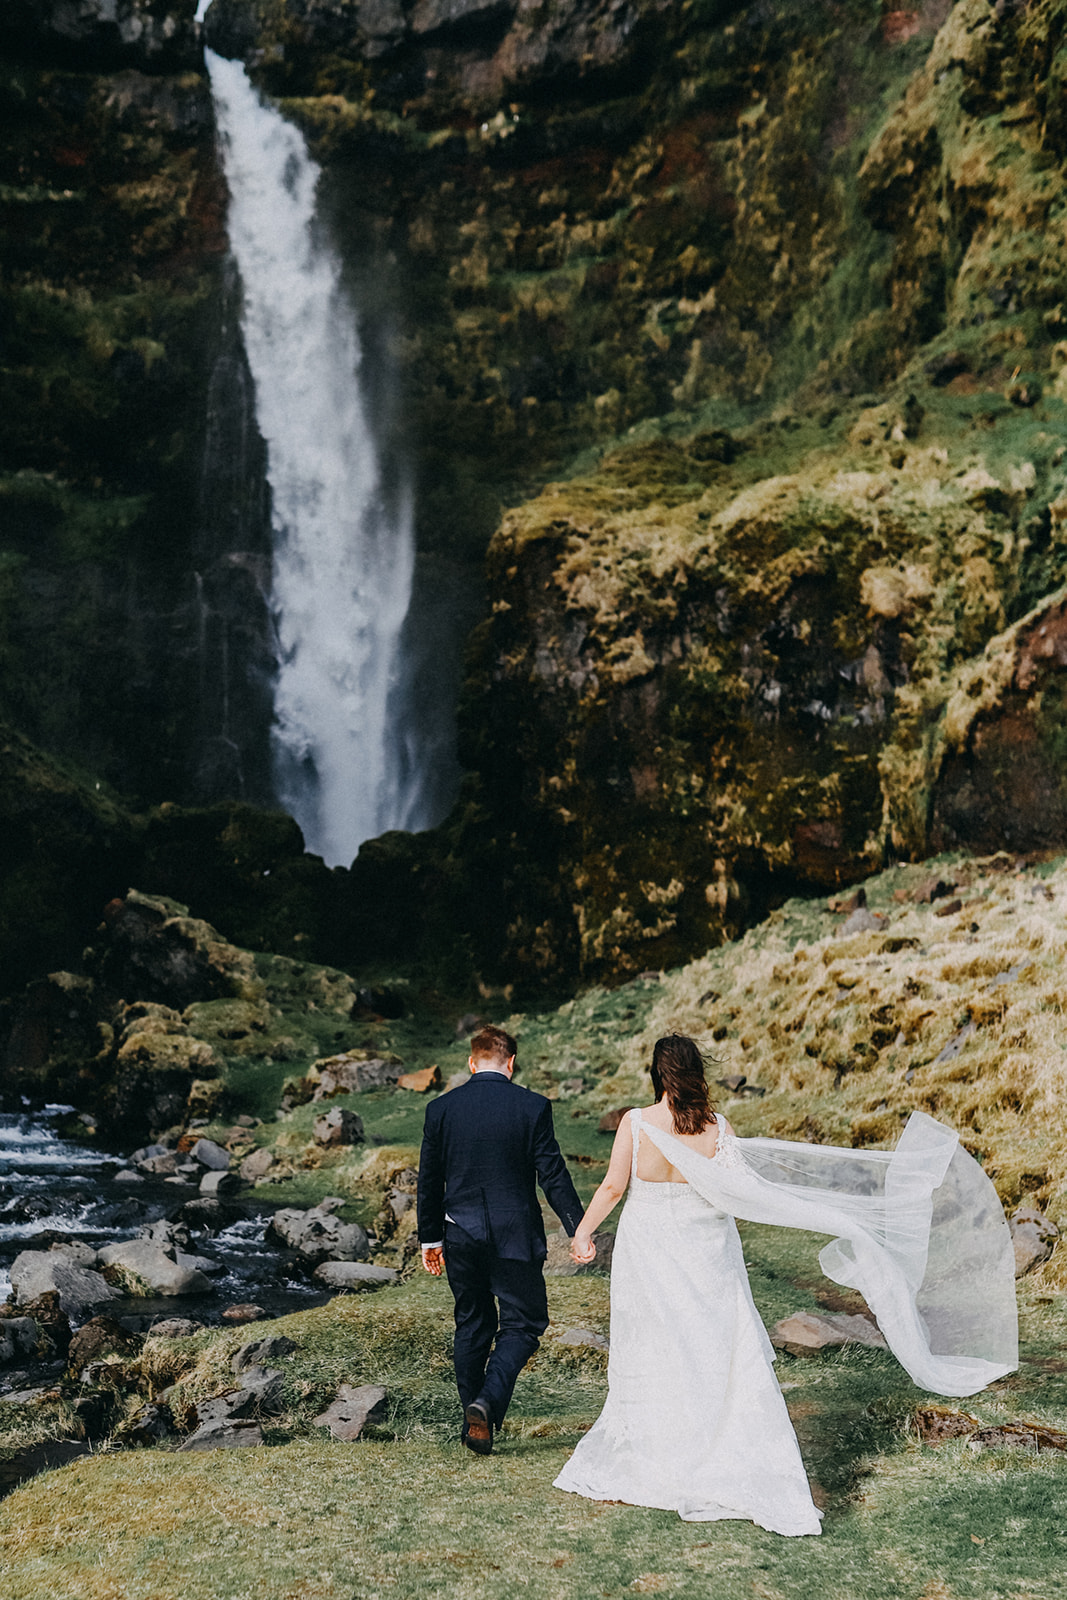 Geting-married-in-iceland-pink-iceland-w